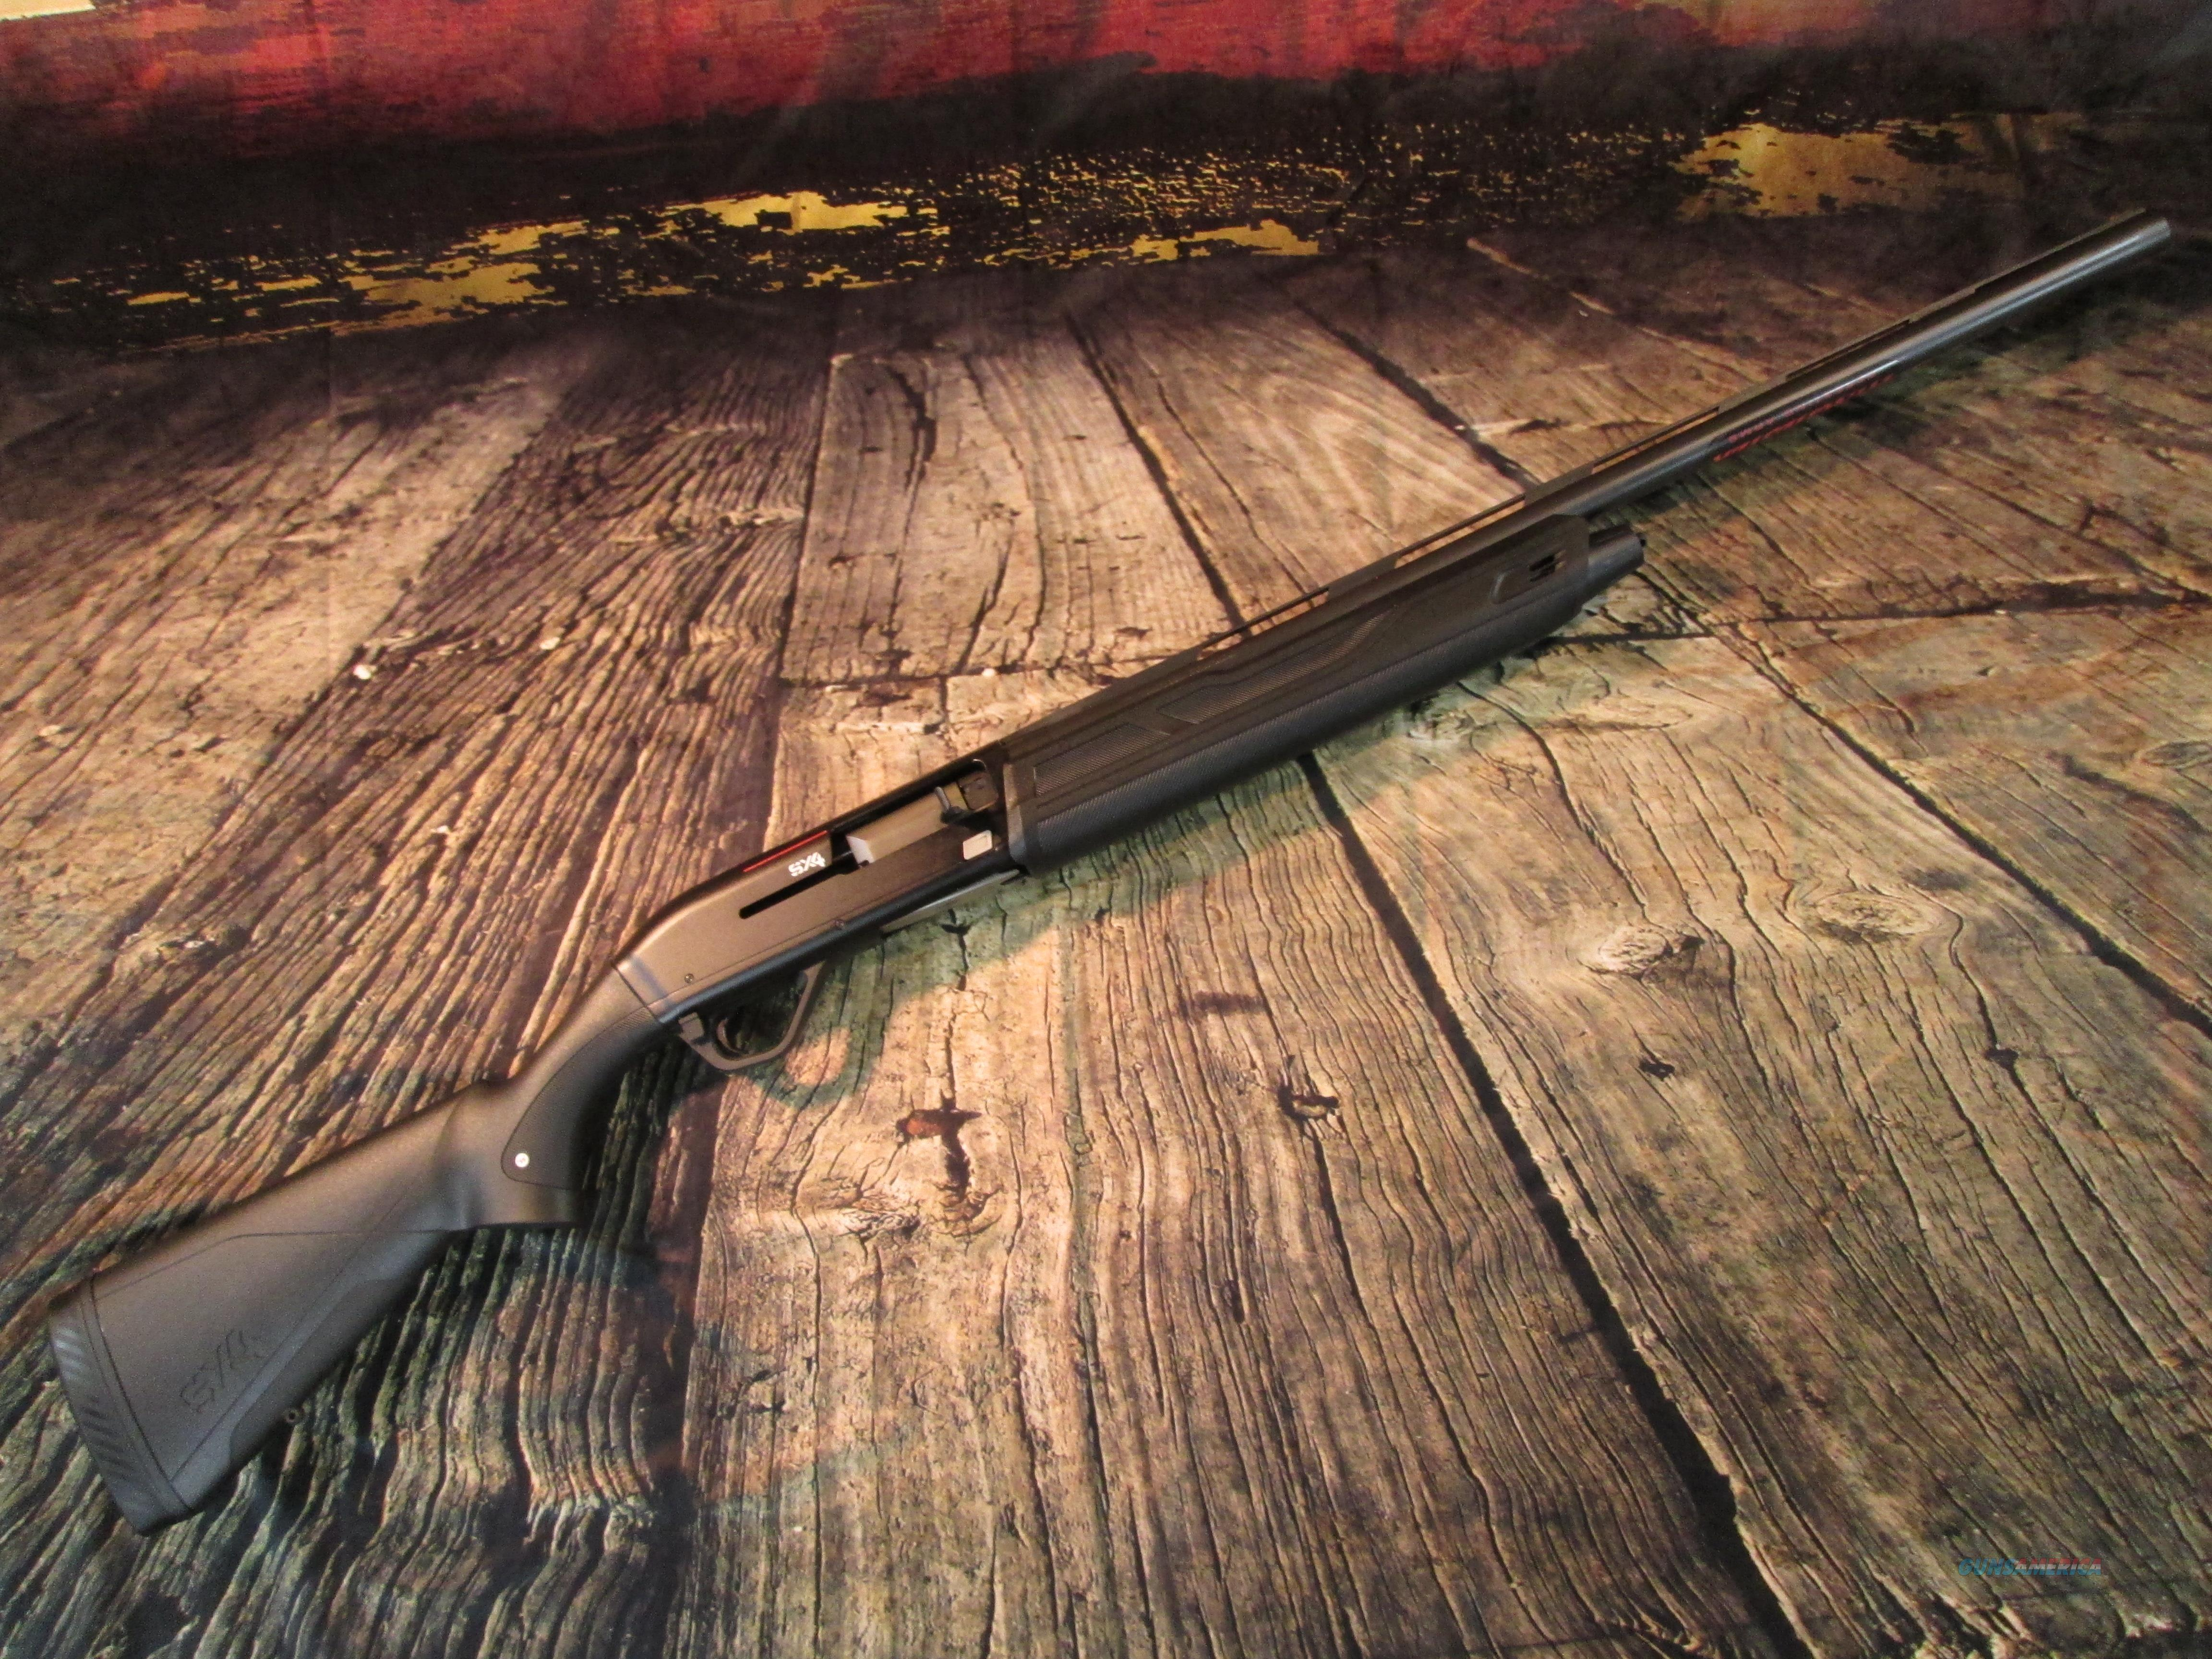 "WINCHESTER SX4 SYNTHETIC 12G 26"" BARREL 3""  (511205391)   Guns > Shotguns > Winchester Shotguns - Modern > Autoloaders > Hunting"